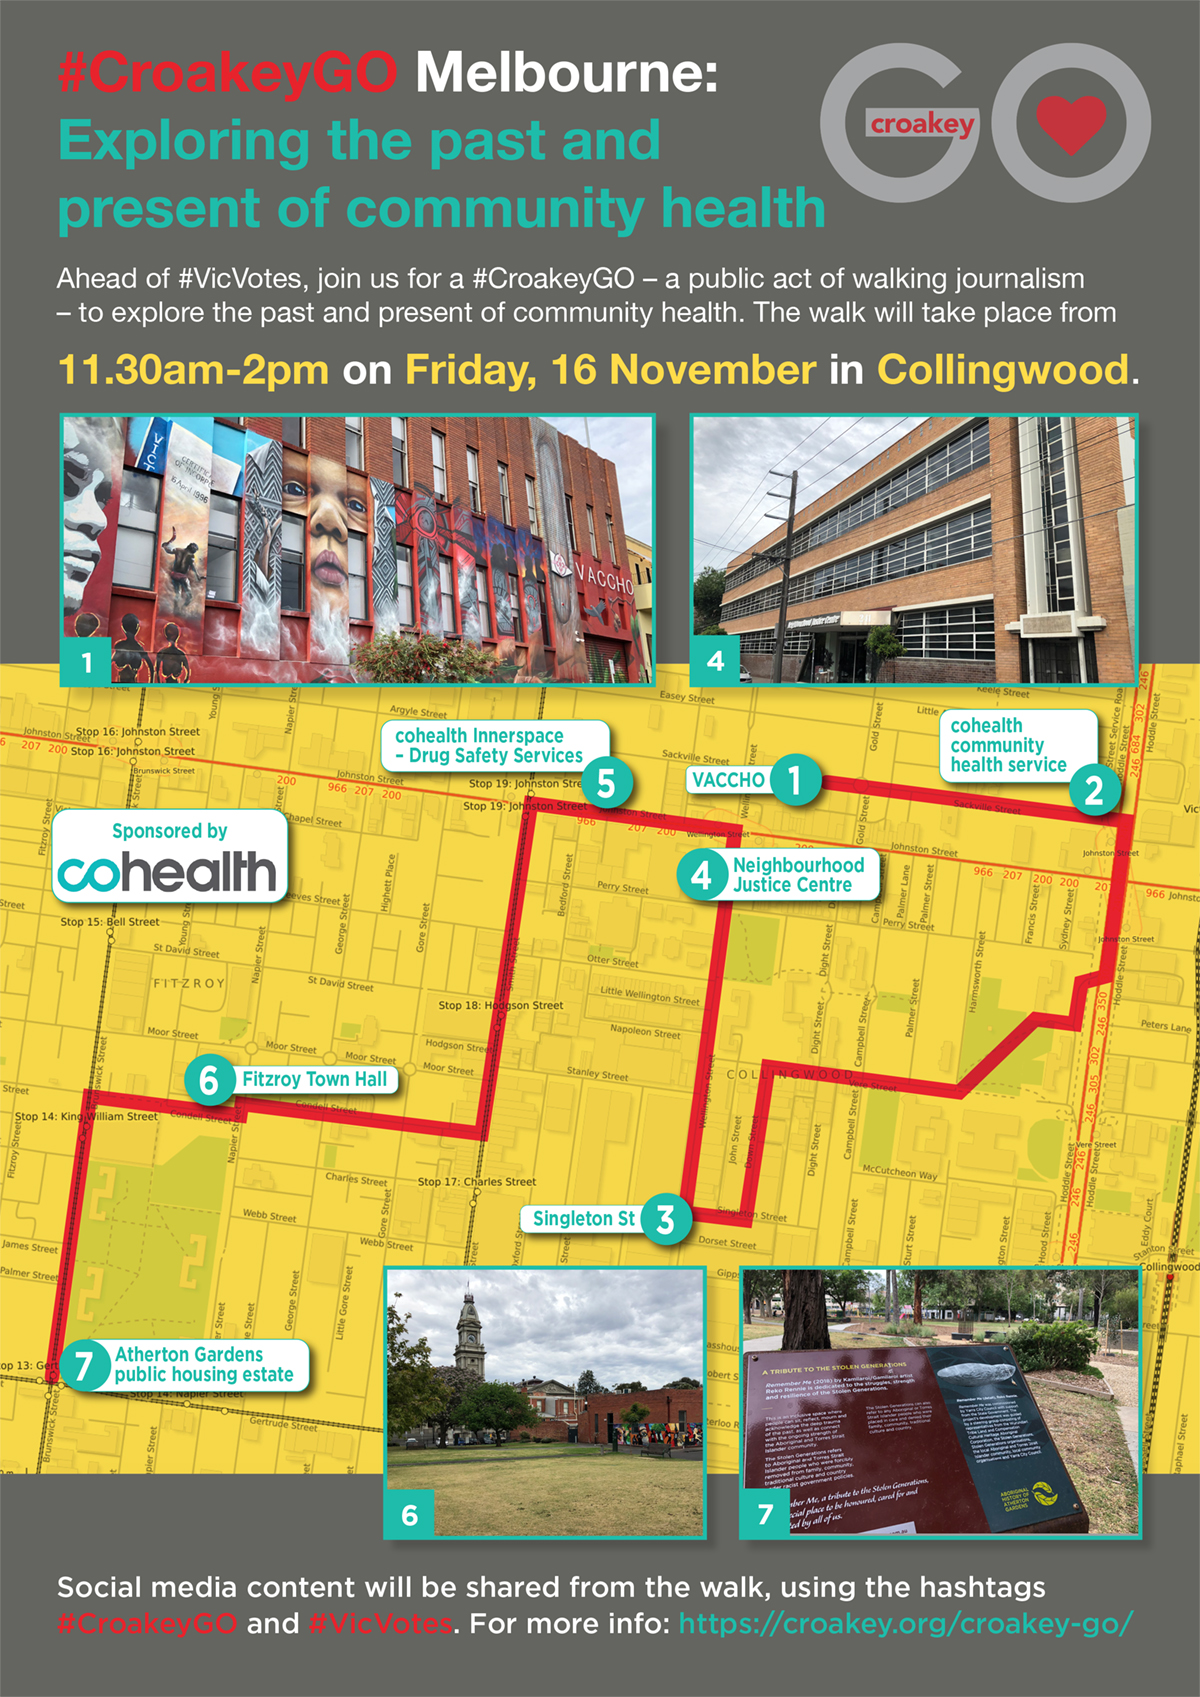 Please join us on a #CroakeyGO in Melbourne for #VicVotes focus on health